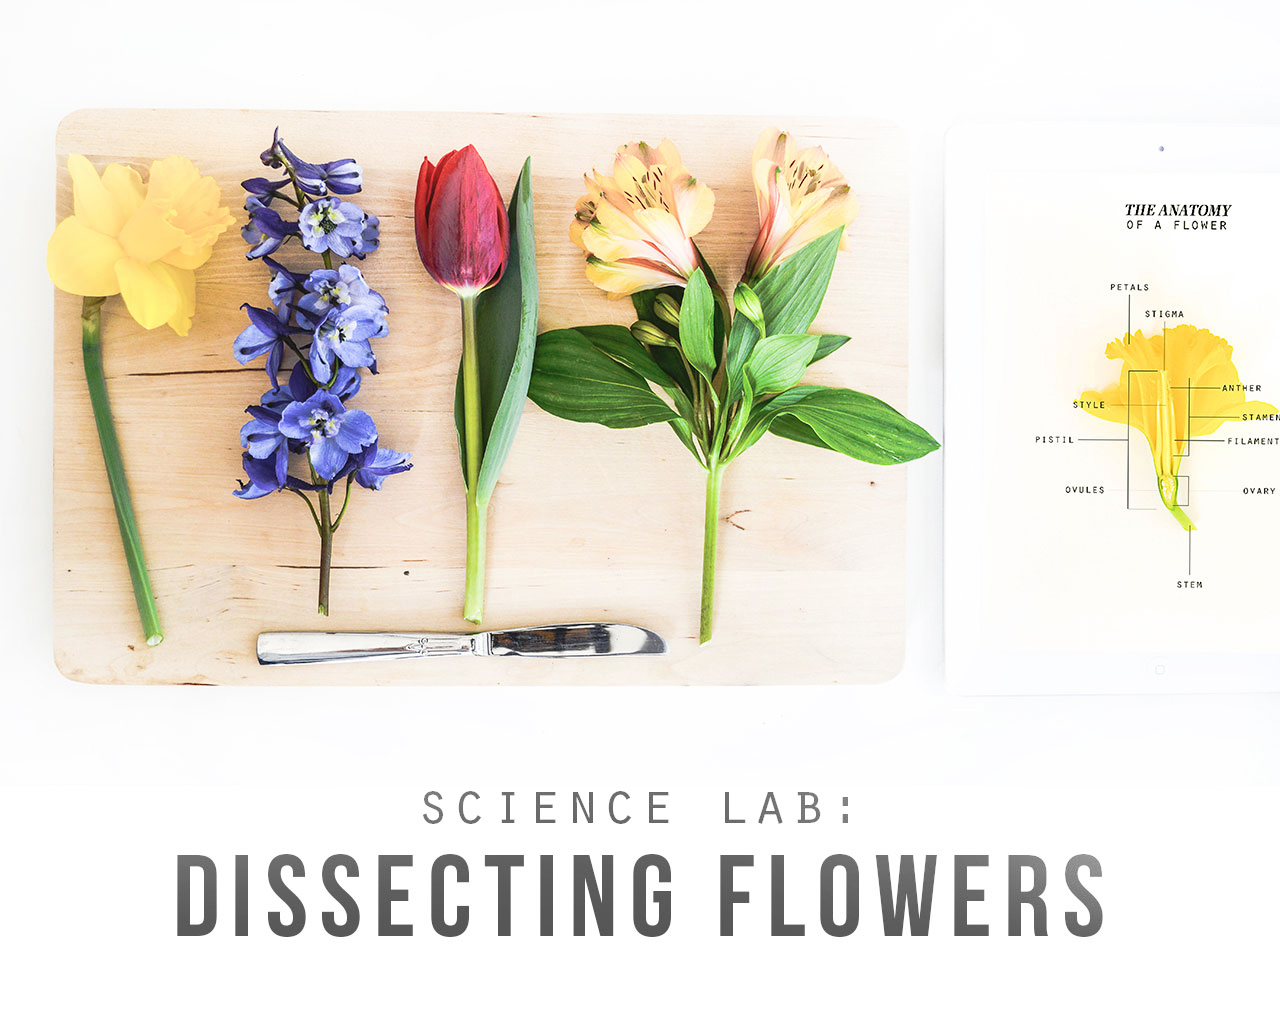 Playful Learning: Dissecting Flowers